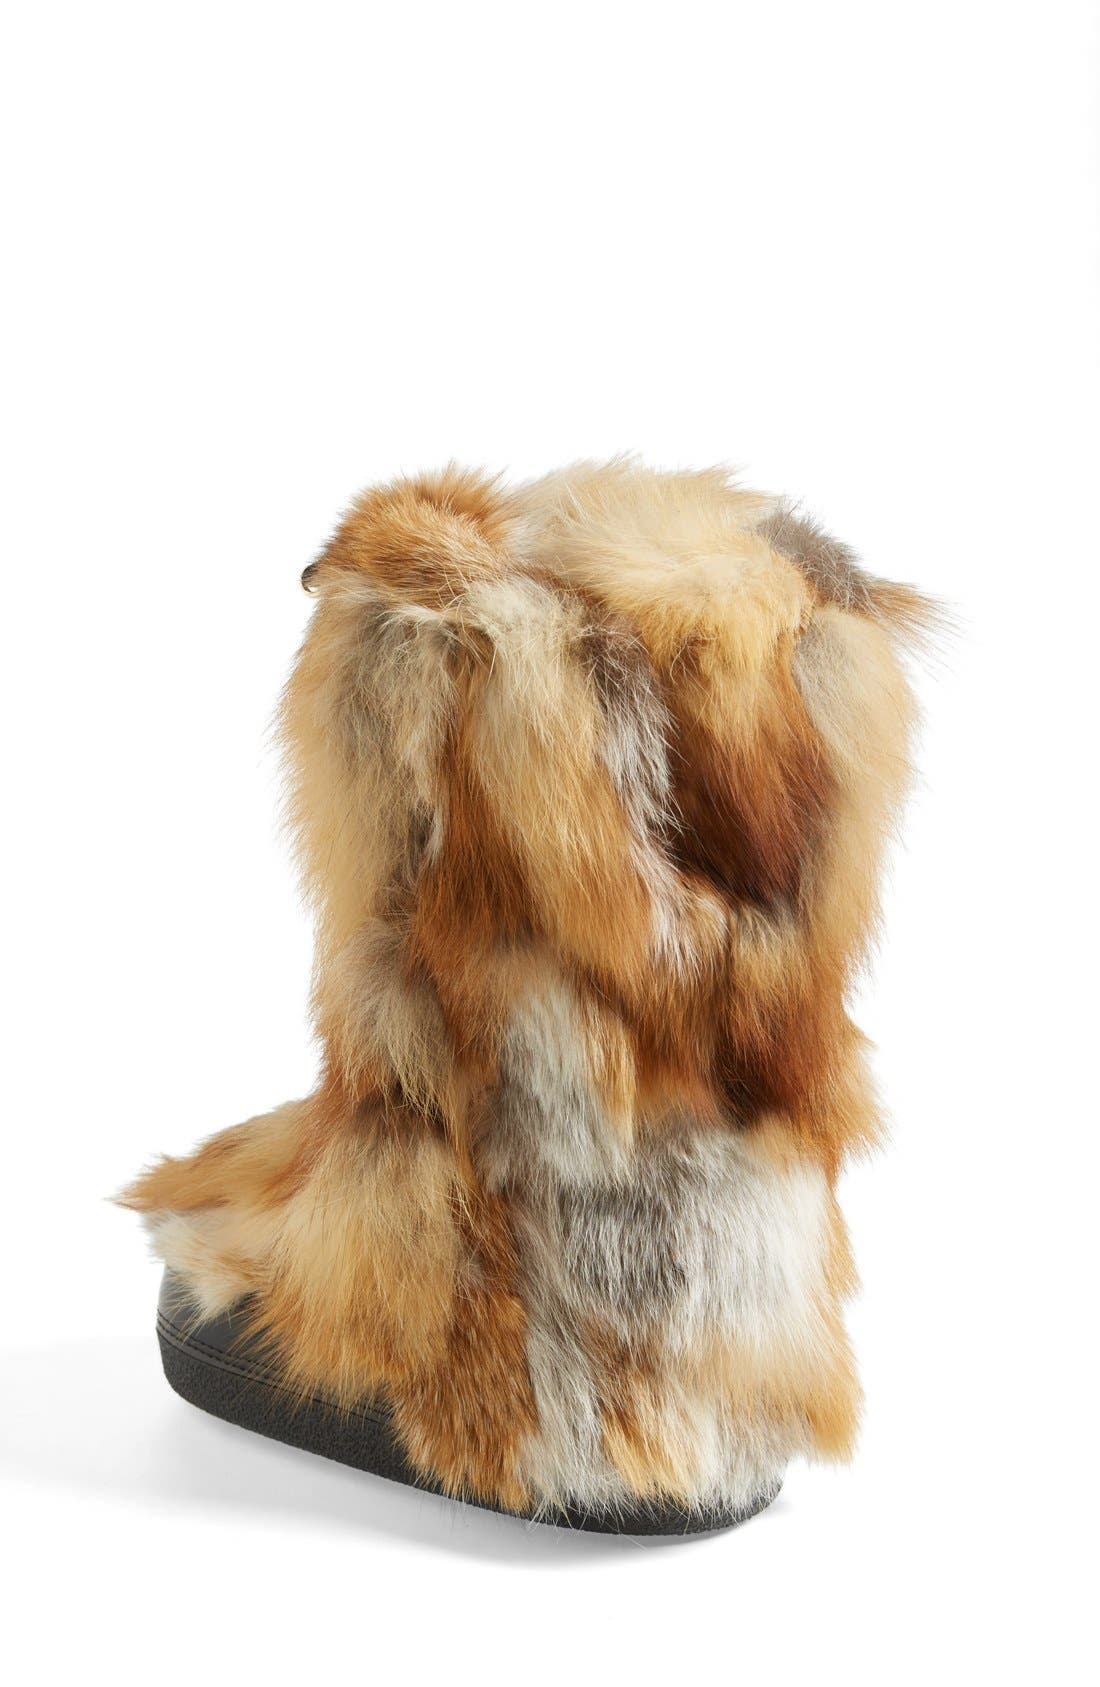 'Danny' Genuine Fox Fur Boot,                             Alternate thumbnail 4, color,                             250